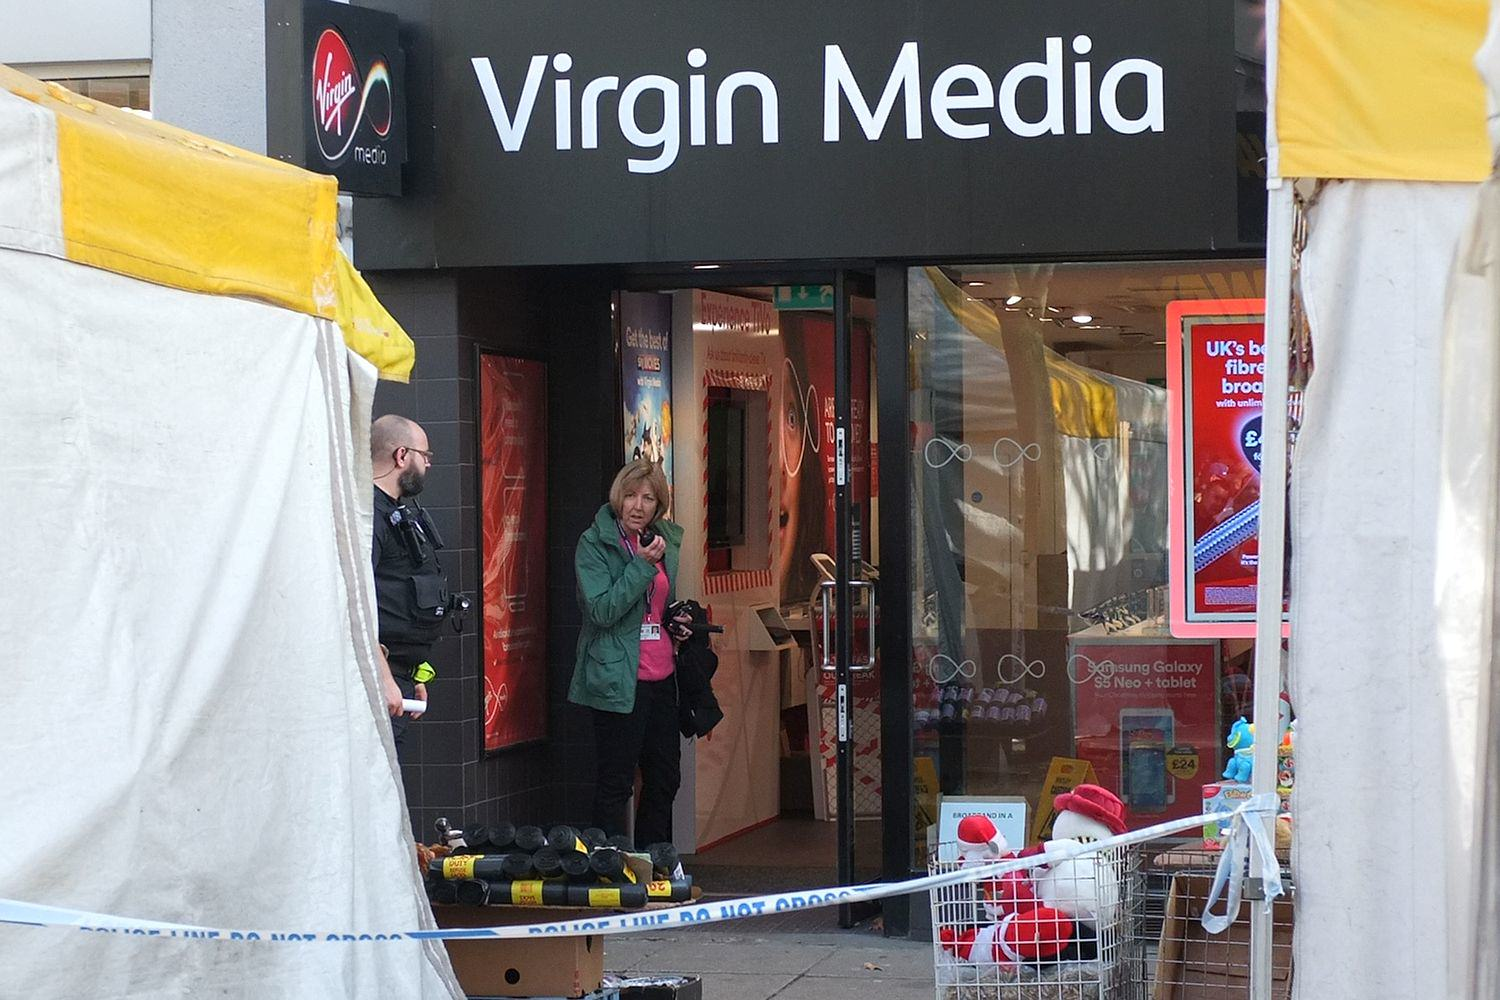 Knife Wielding Man Takes Hostages At Phone Shop After Receiving Large Bill UNILAD Solent News Photo Agency30601